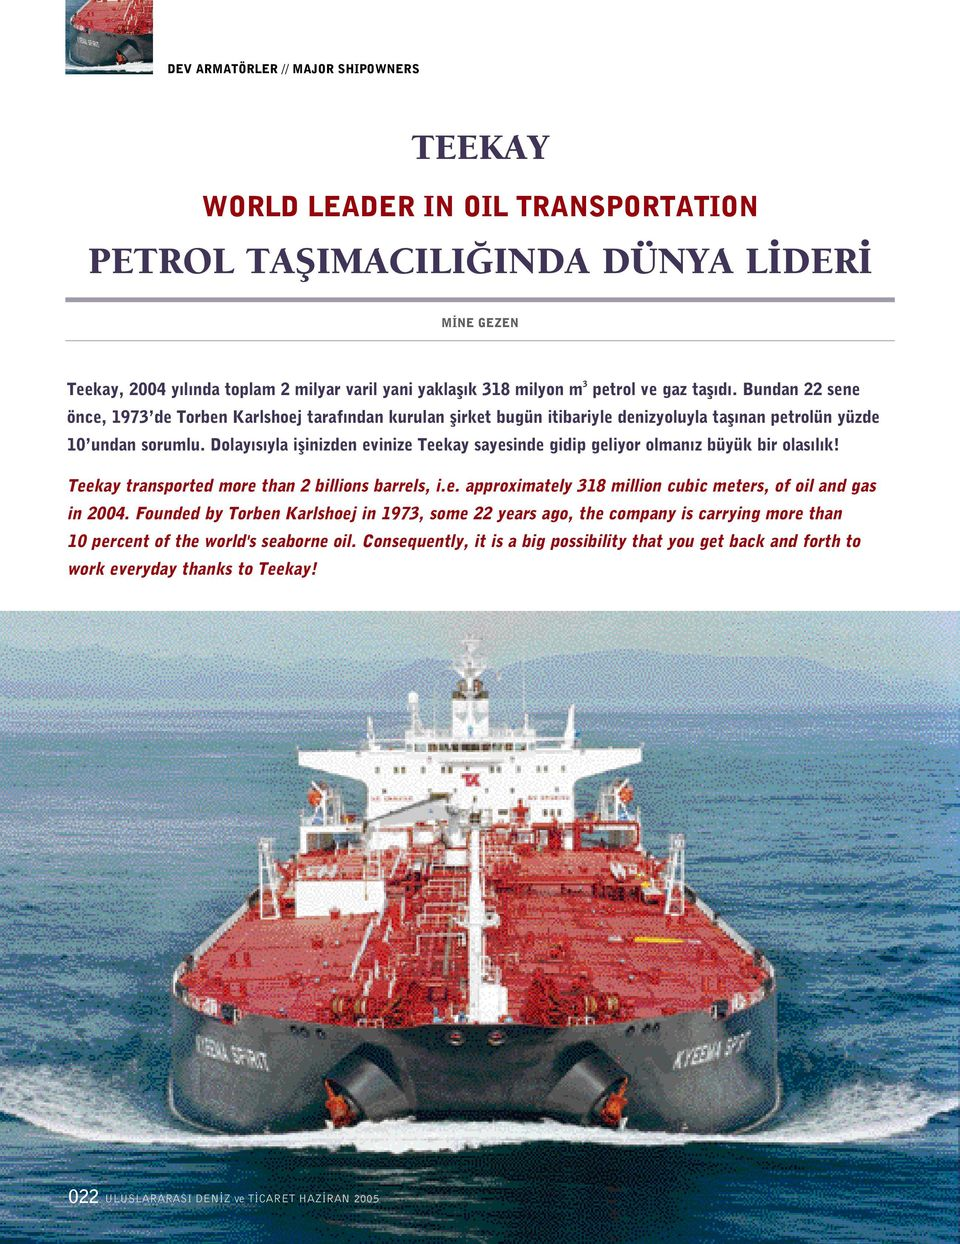 Dolay s yla iflinizden evinize Teekay sayesinde gidip geliyor olman z büyük bir olas l k! Teekay transported more than 2 billions barrels, i.e. approximately 318 million cubic meters, of oil and gas in 2004.